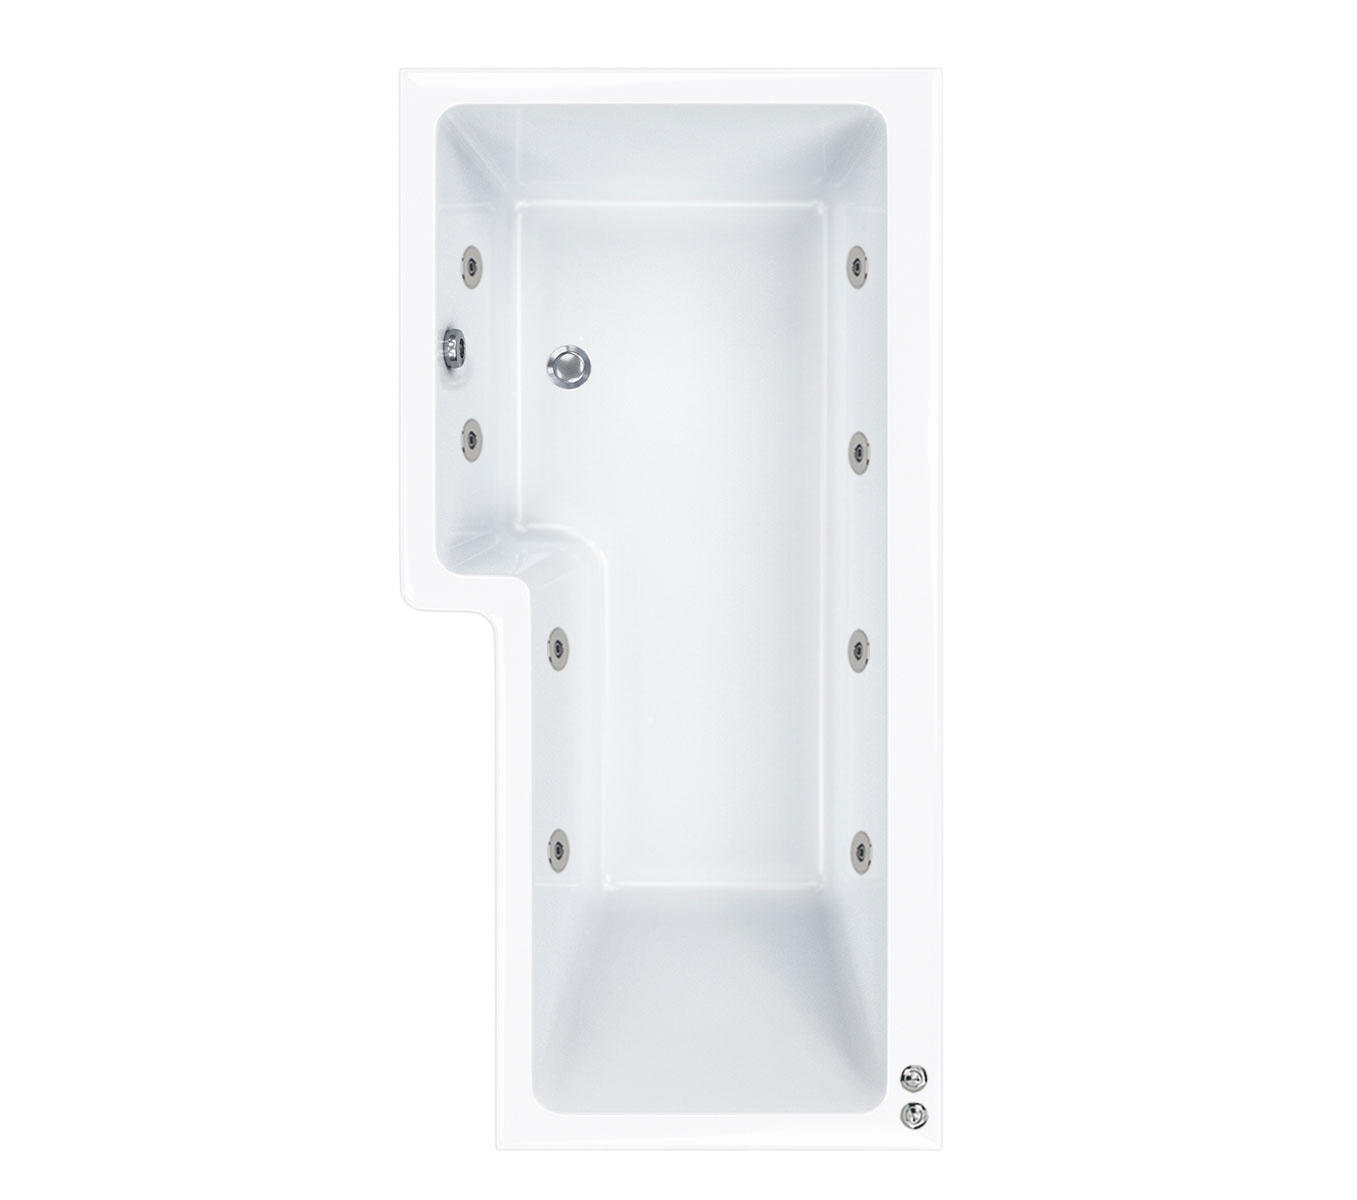 8 jet LH Carron 1500 mm Quantum L Shape Whirlpool Shower Bath